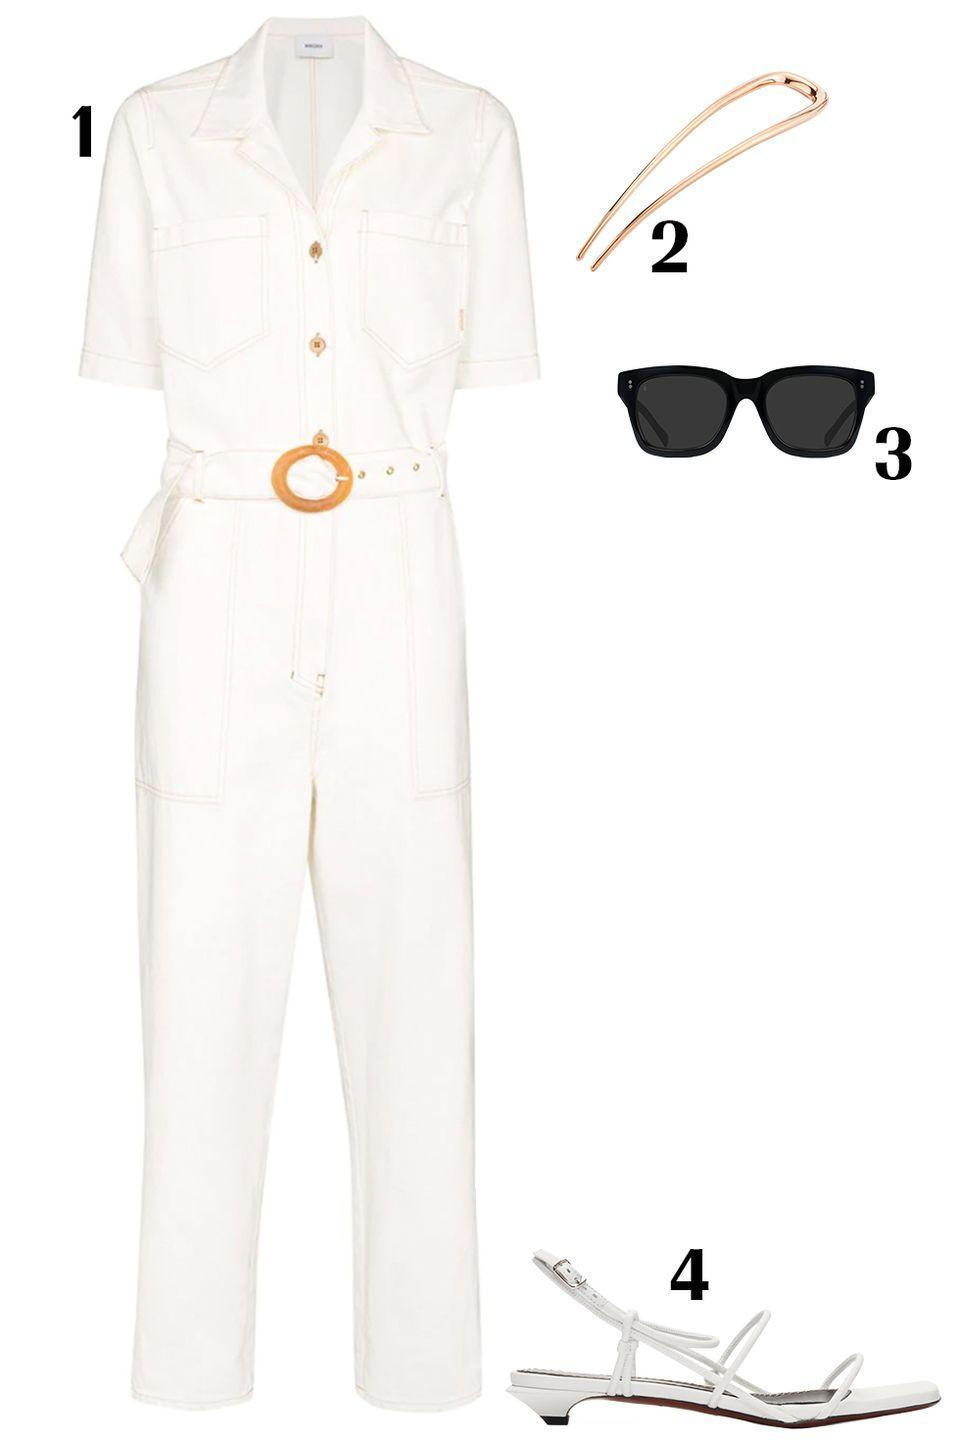 "<p>Here is your dress alternative - a jumpsuit. Add a strappy sandal and a chic pin in your hair and you're dressed and ready to go in two minutes flat.</p><p>1) <a href=""https://www.farfetch.com/shopping/women/nanushka-arlo-denim-jumpsuit-item-14607044.aspx?fsb=1&size=20&storeid=10346&clickref=1100l83utrqy&utm_source=shopstyle&utm_medium=affiliate&utm_campaign=PHUS&utm_term=USNetwork&pid=performancehorizon_int&c=shopstyle&clickid=1100l83utrqy&af_siteid=1101l510&af_sub_siteid=1011l270&af_cost_model=CPA&af_channel=affiliate&is_retargeting=true"" rel=""nofollow noopener"" target=""_blank"" data-ylk=""slk:Nanushka jumpsuit"" class=""link rapid-noclick-resp"">Nanushka jumpsuit</a>, $321 2) <a href=""https://deborahpagani.com/products/large-hair-pin"" rel=""nofollow noopener"" target=""_blank"" data-ylk=""slk:Deborah Pagani hair pin"" class=""link rapid-noclick-resp"">Deborah Pagani hair pin</a>, $90 3)<a href=""https://raen.com/products/gilman-square-sunglasses?variant=7459234218045"" rel=""nofollow noopener"" target=""_blank"" data-ylk=""slk:Raen sunglasses"" class=""link rapid-noclick-resp""> Raen sunglasses</a>, $150 4) <a href=""https://www.ssense.com/en-us/women/product/proenza-schouler/white-strappy-low-kitten-heel-sandals/4671411?clickref=1101l83ibfas&utm_source=PH_1101l510&utm_medium=affiliate&utm_content=0&utm_term=https%3A%2F%2Fwww.shopstyle.com%2F&utm_campaign="" rel=""nofollow noopener"" target=""_blank"" data-ylk=""slk:Proenza Schouler sandals"" class=""link rapid-noclick-resp"">Proenza Schouler sandals</a>, $620</p>"